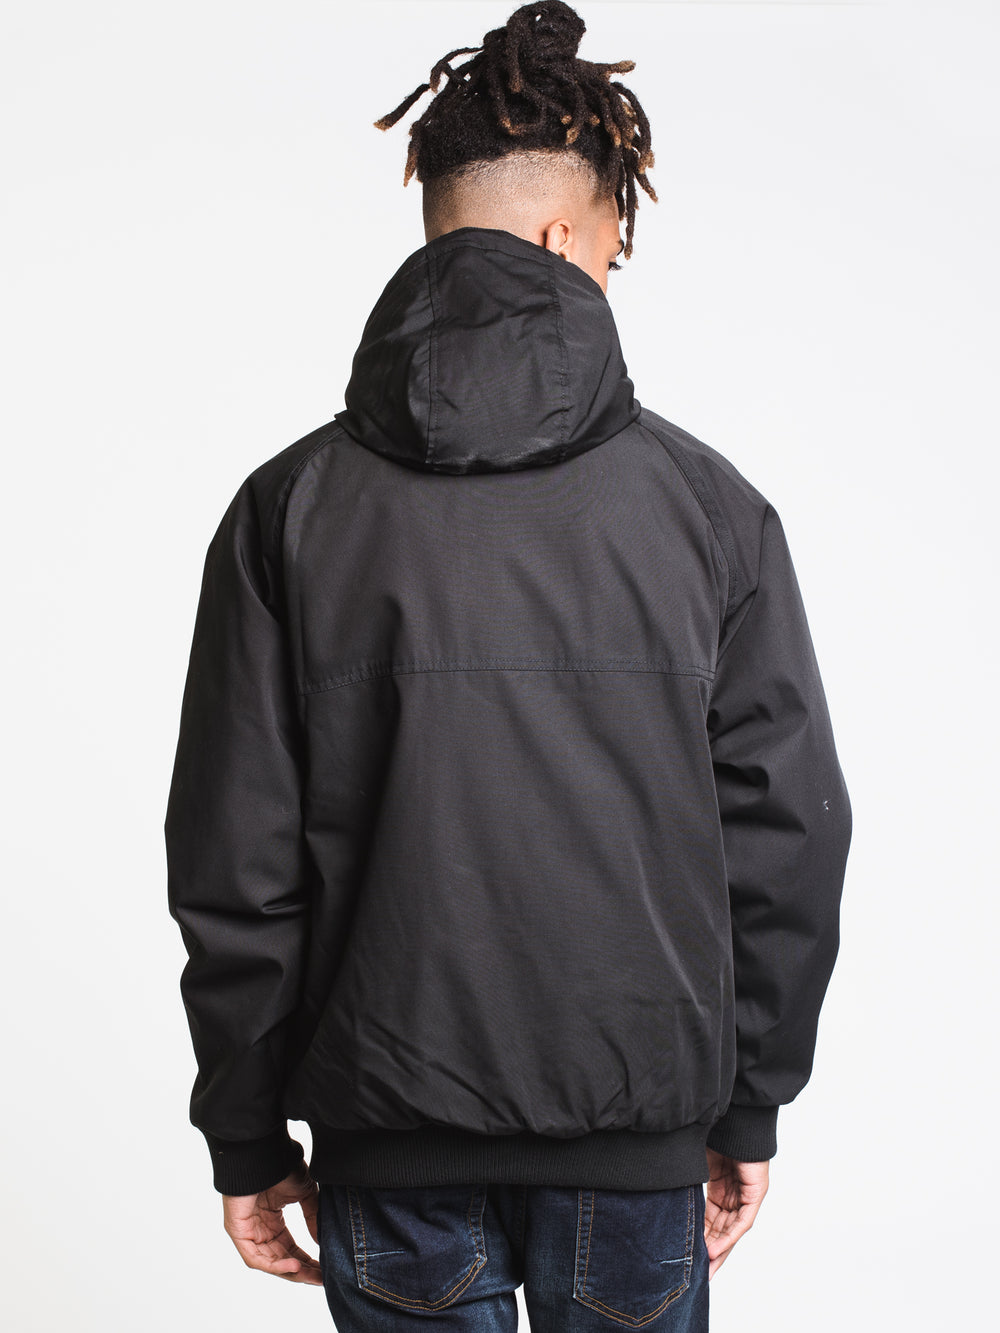 MENS HERNAN 5K JACKET - BLACK